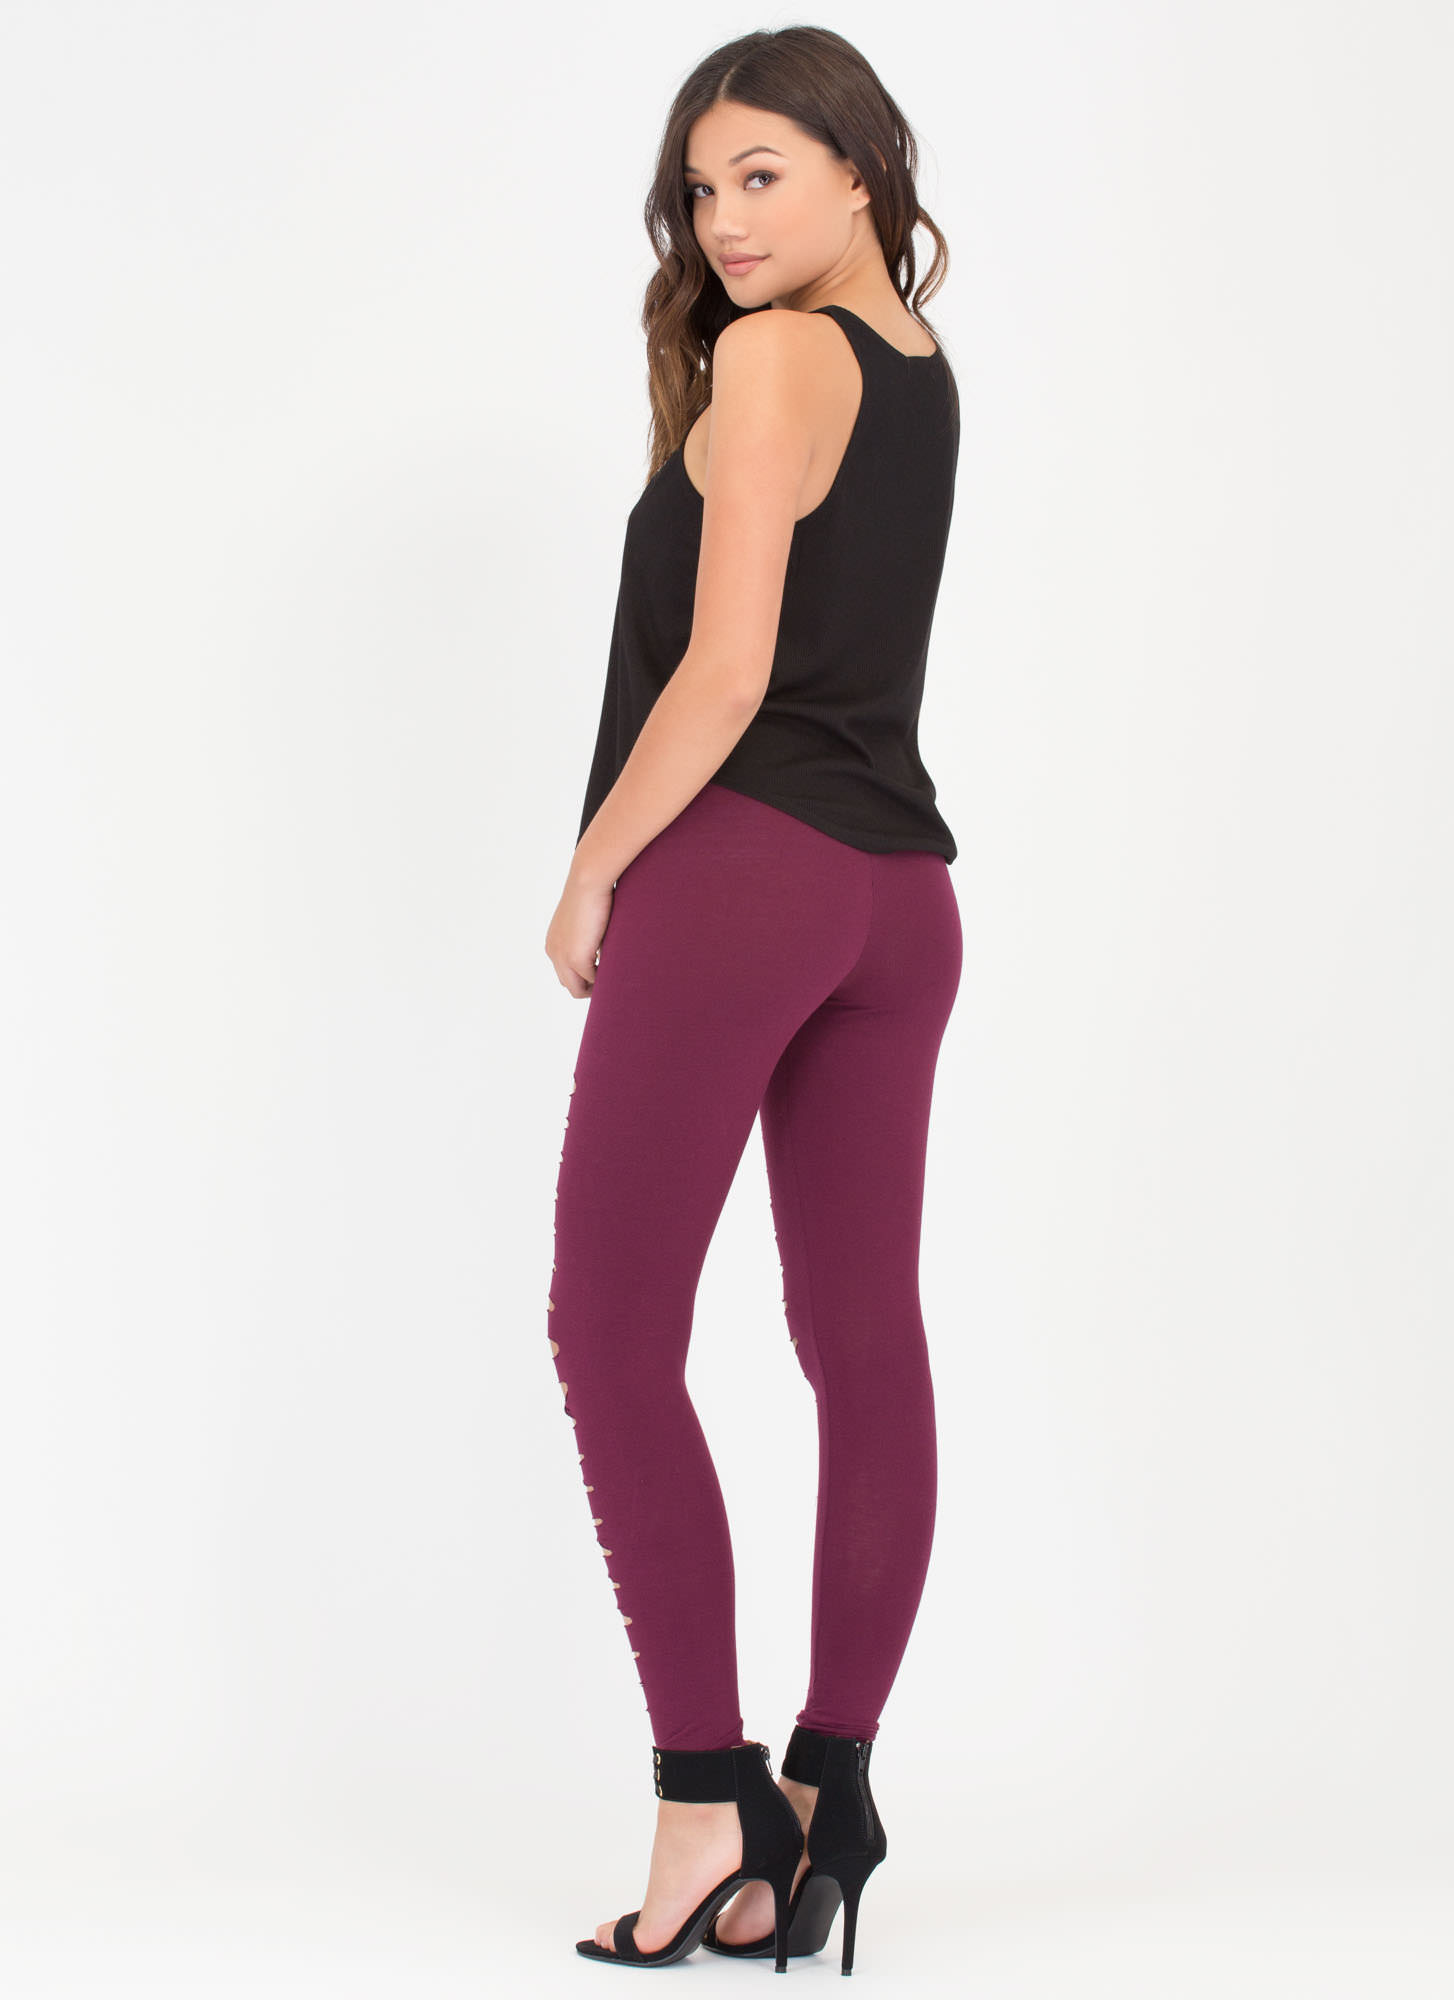 Holy Slit Shredded Front Leggings MERLOT